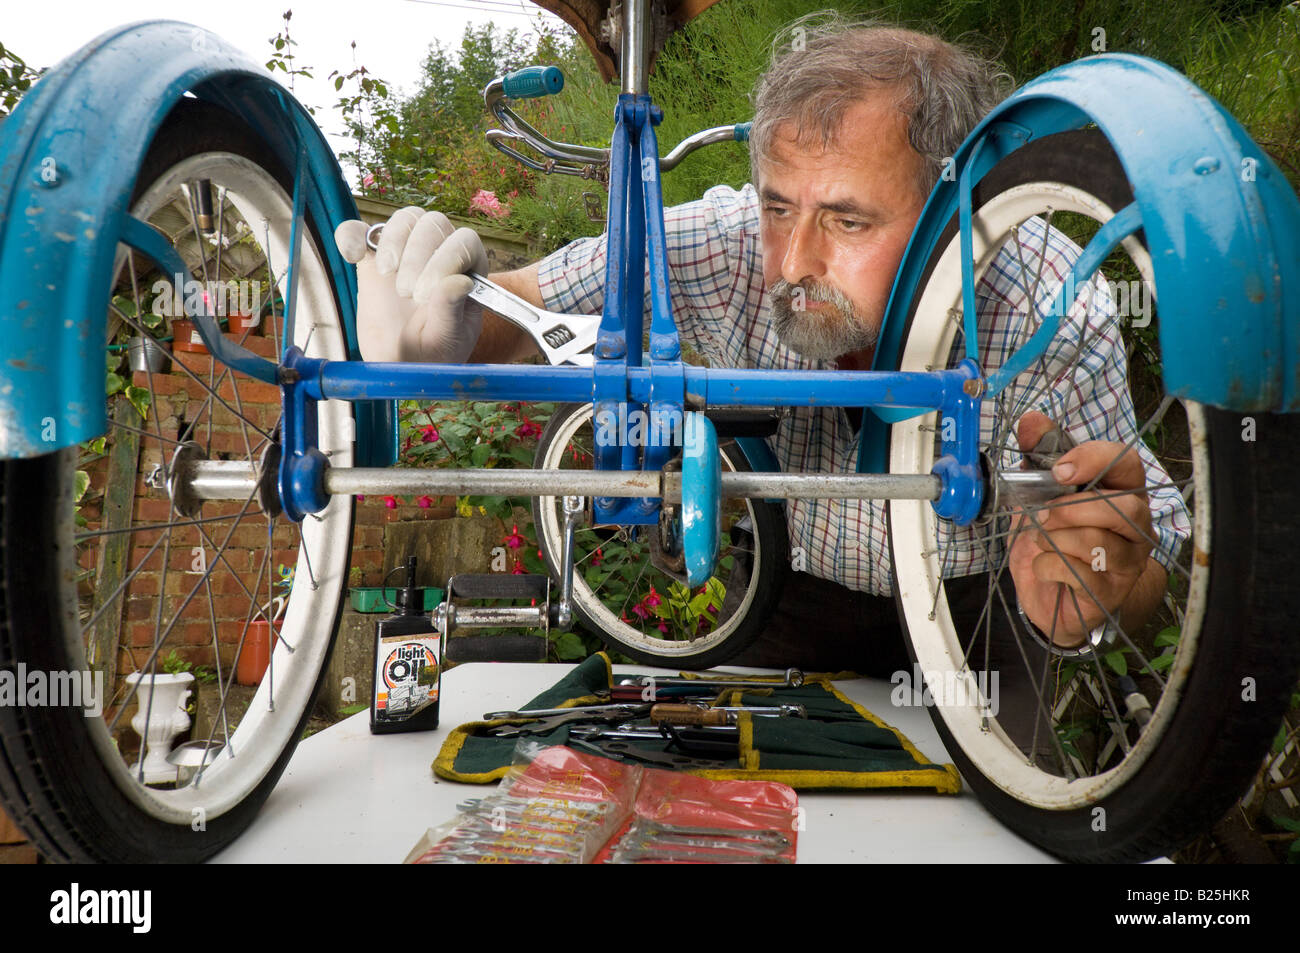 A man repairing a childs tricycle in his back garden - Stock Image